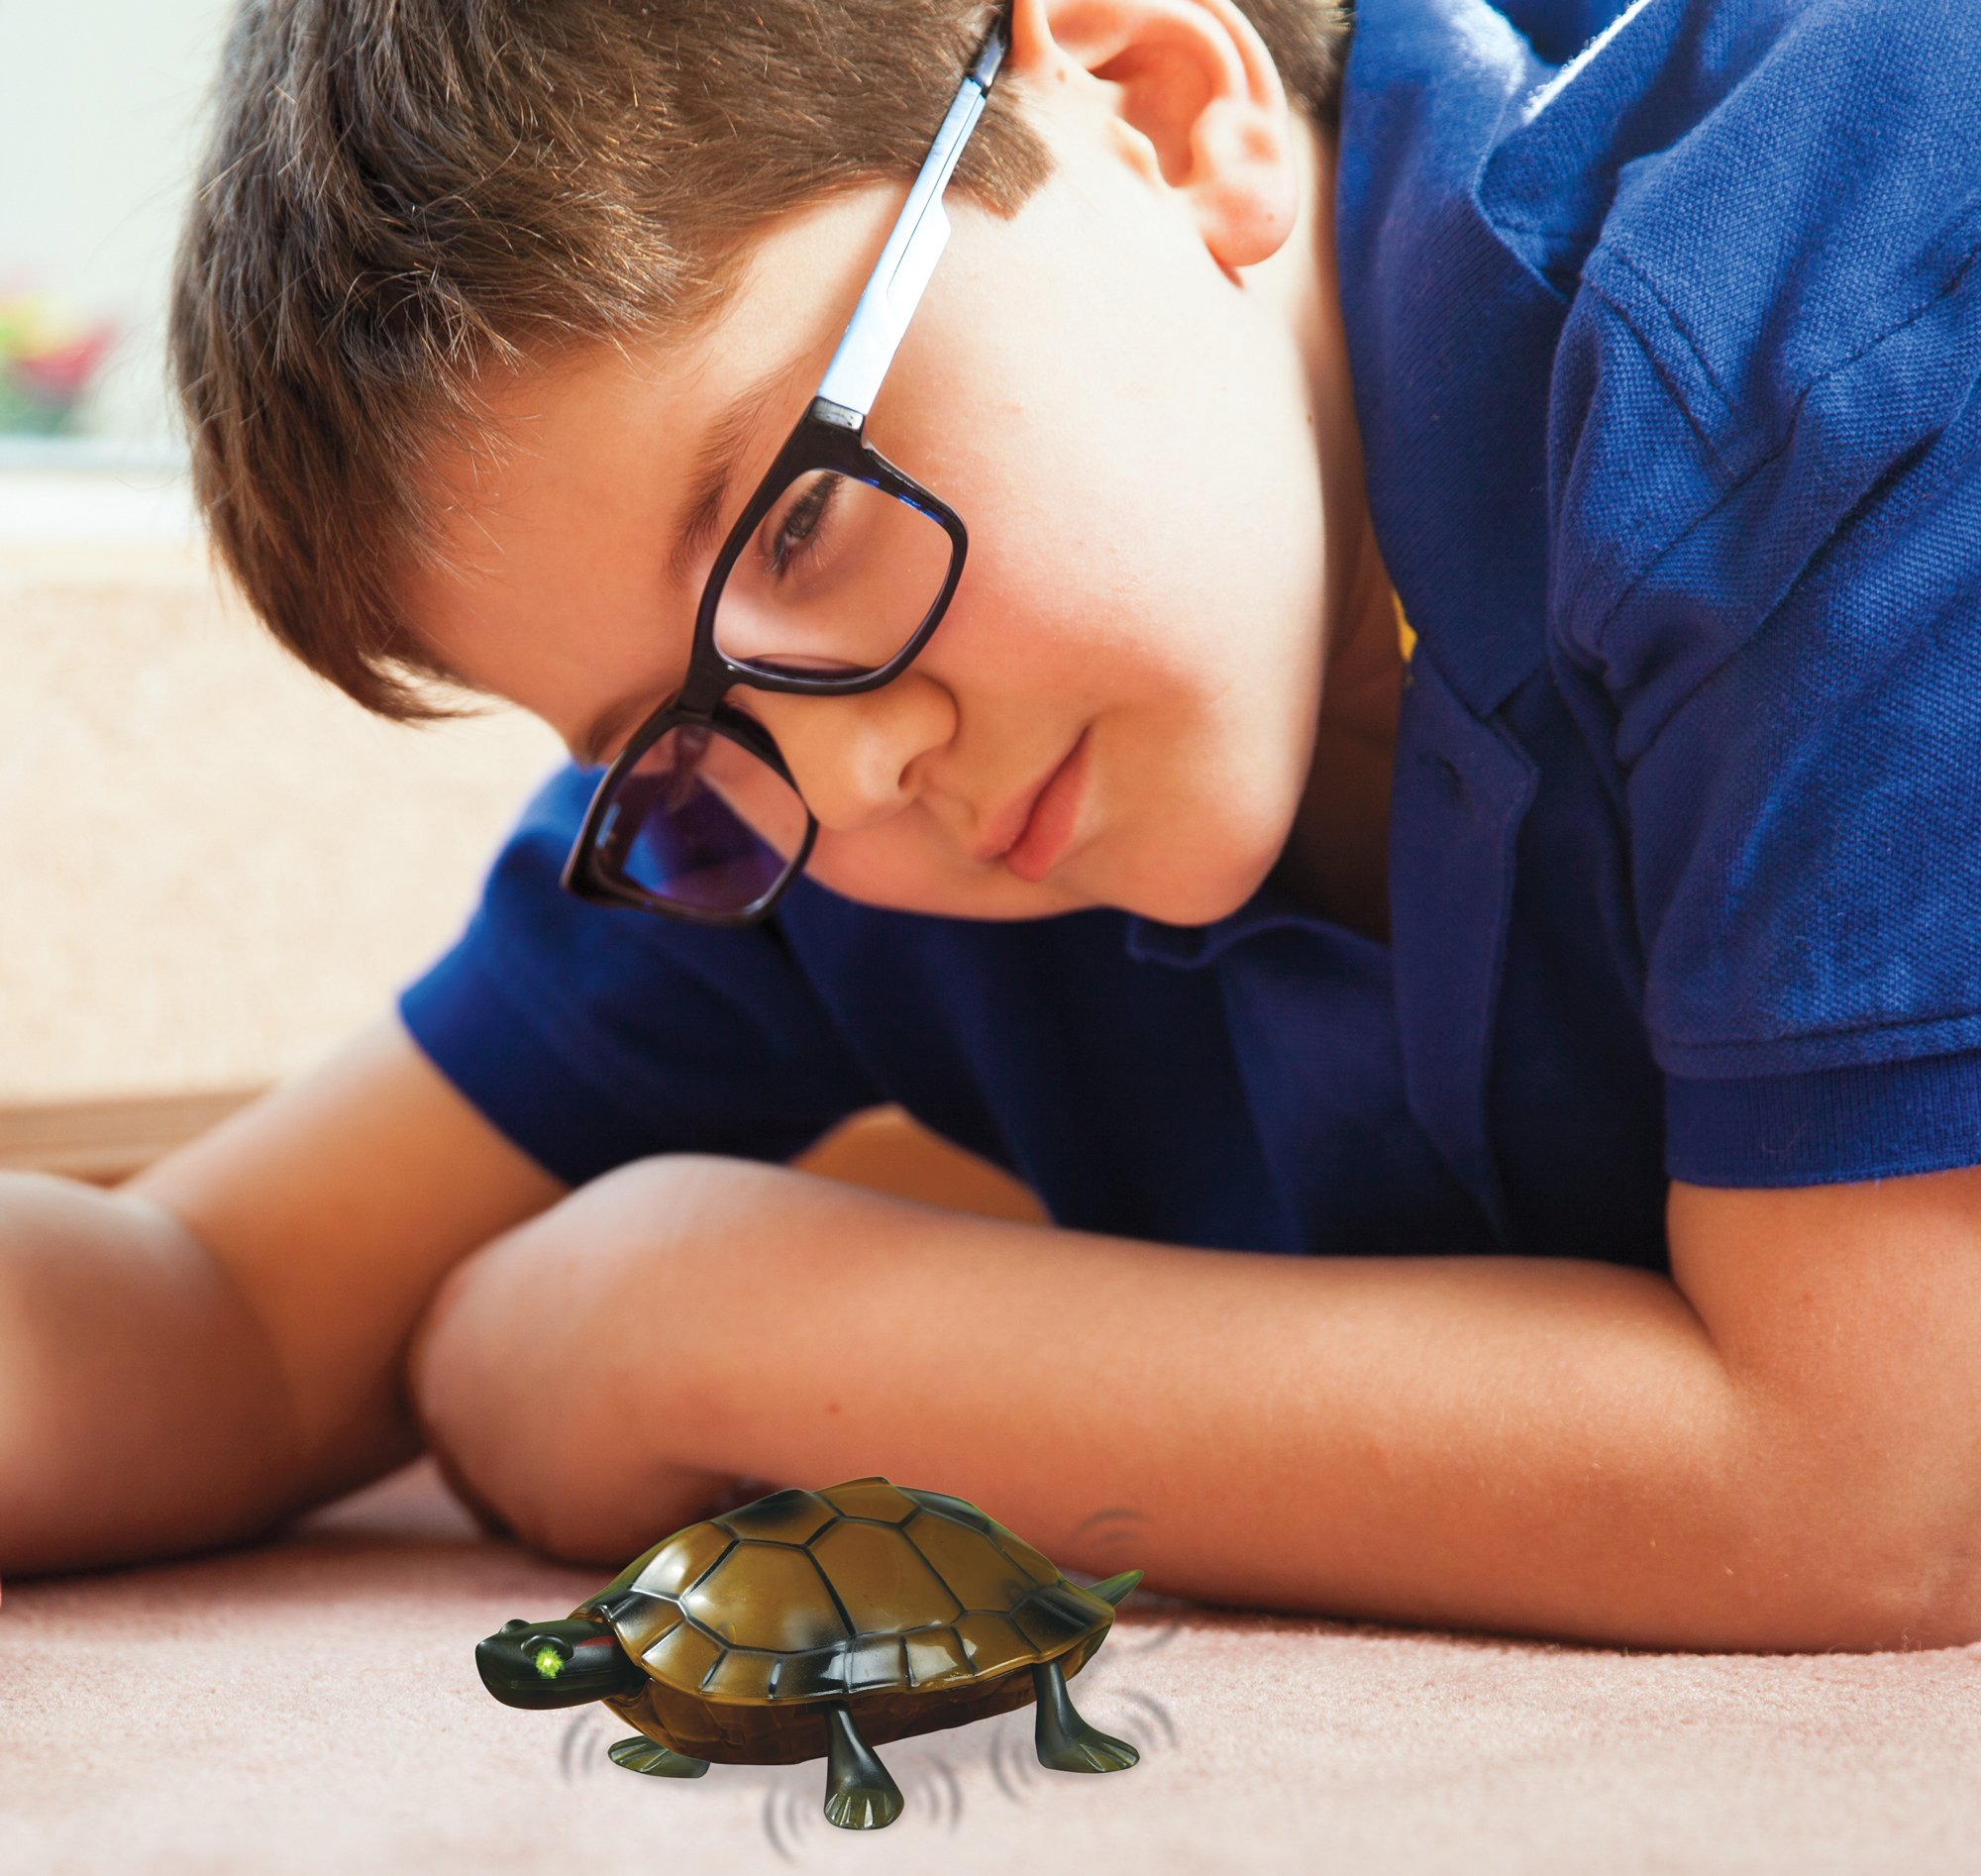 The Paragon Remote Control Turtle - RC Animal Toy, Turtle Toy for Kids and Adults by The Paragon (Image #3)